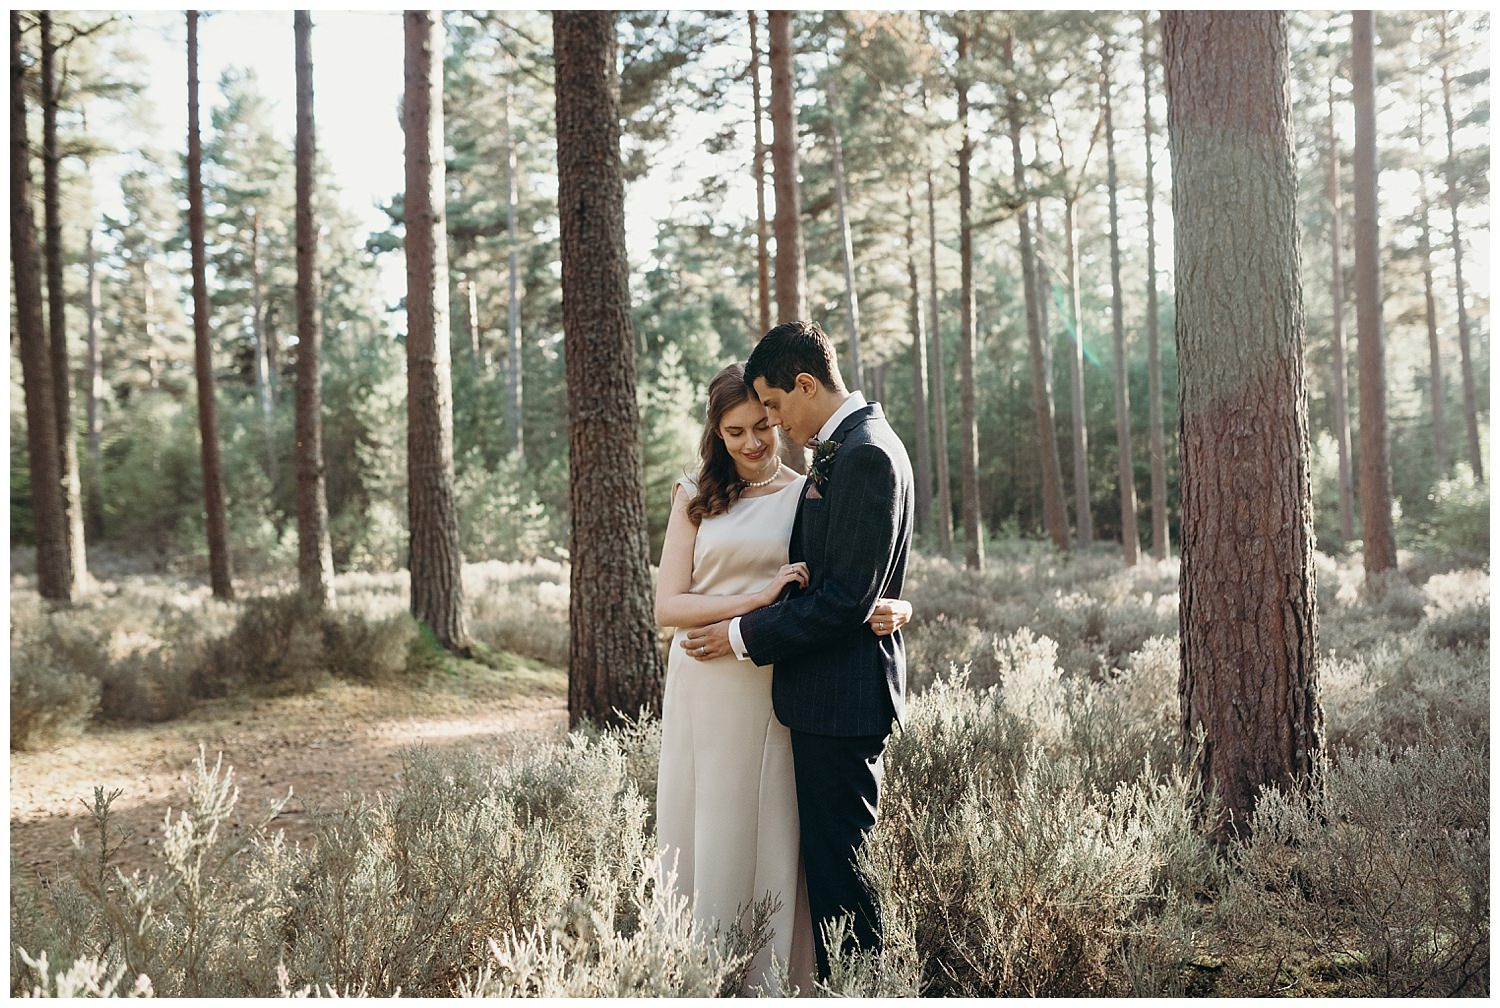 Culbin forest wedding photography by Hayley and Craig